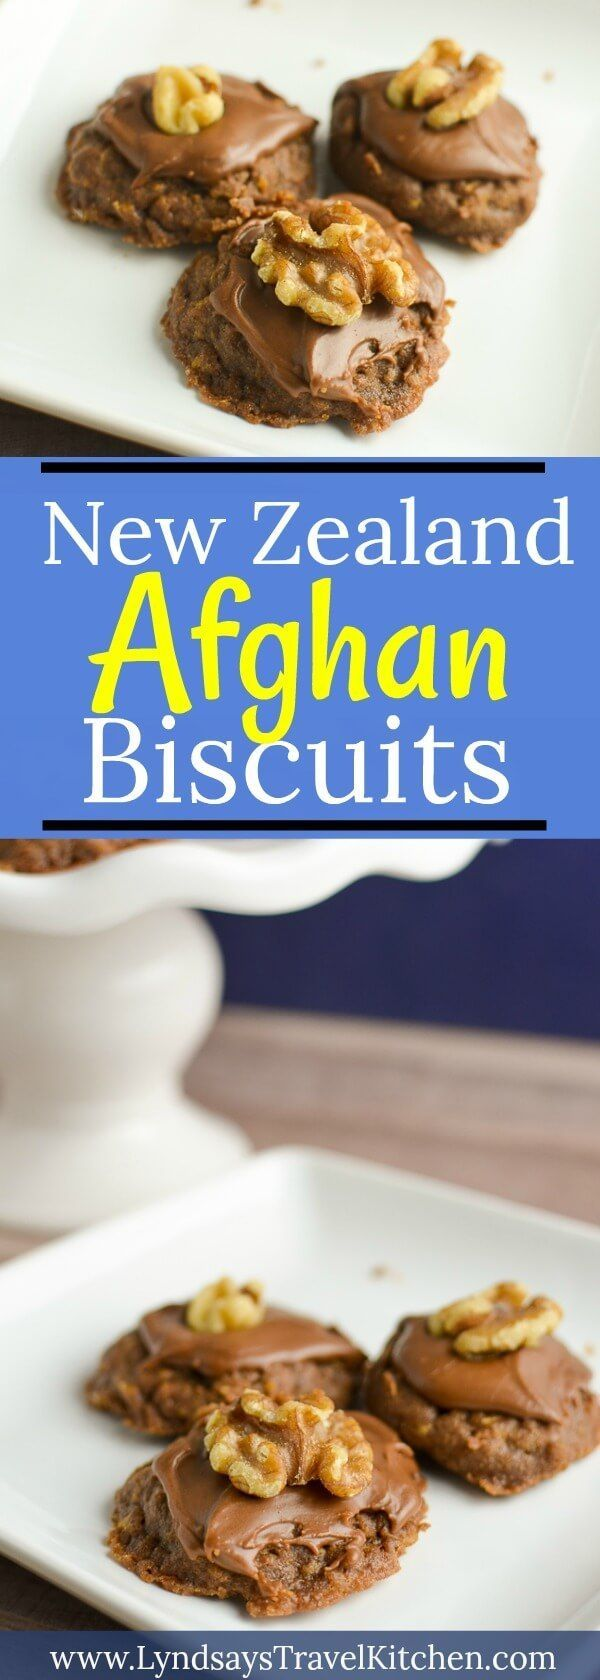 These New Zealand Afghan Biscuits are the perfect holiday cookie to make this Christmas season! Made with cornflakes, these chocolate cookies will be gone in a snap!